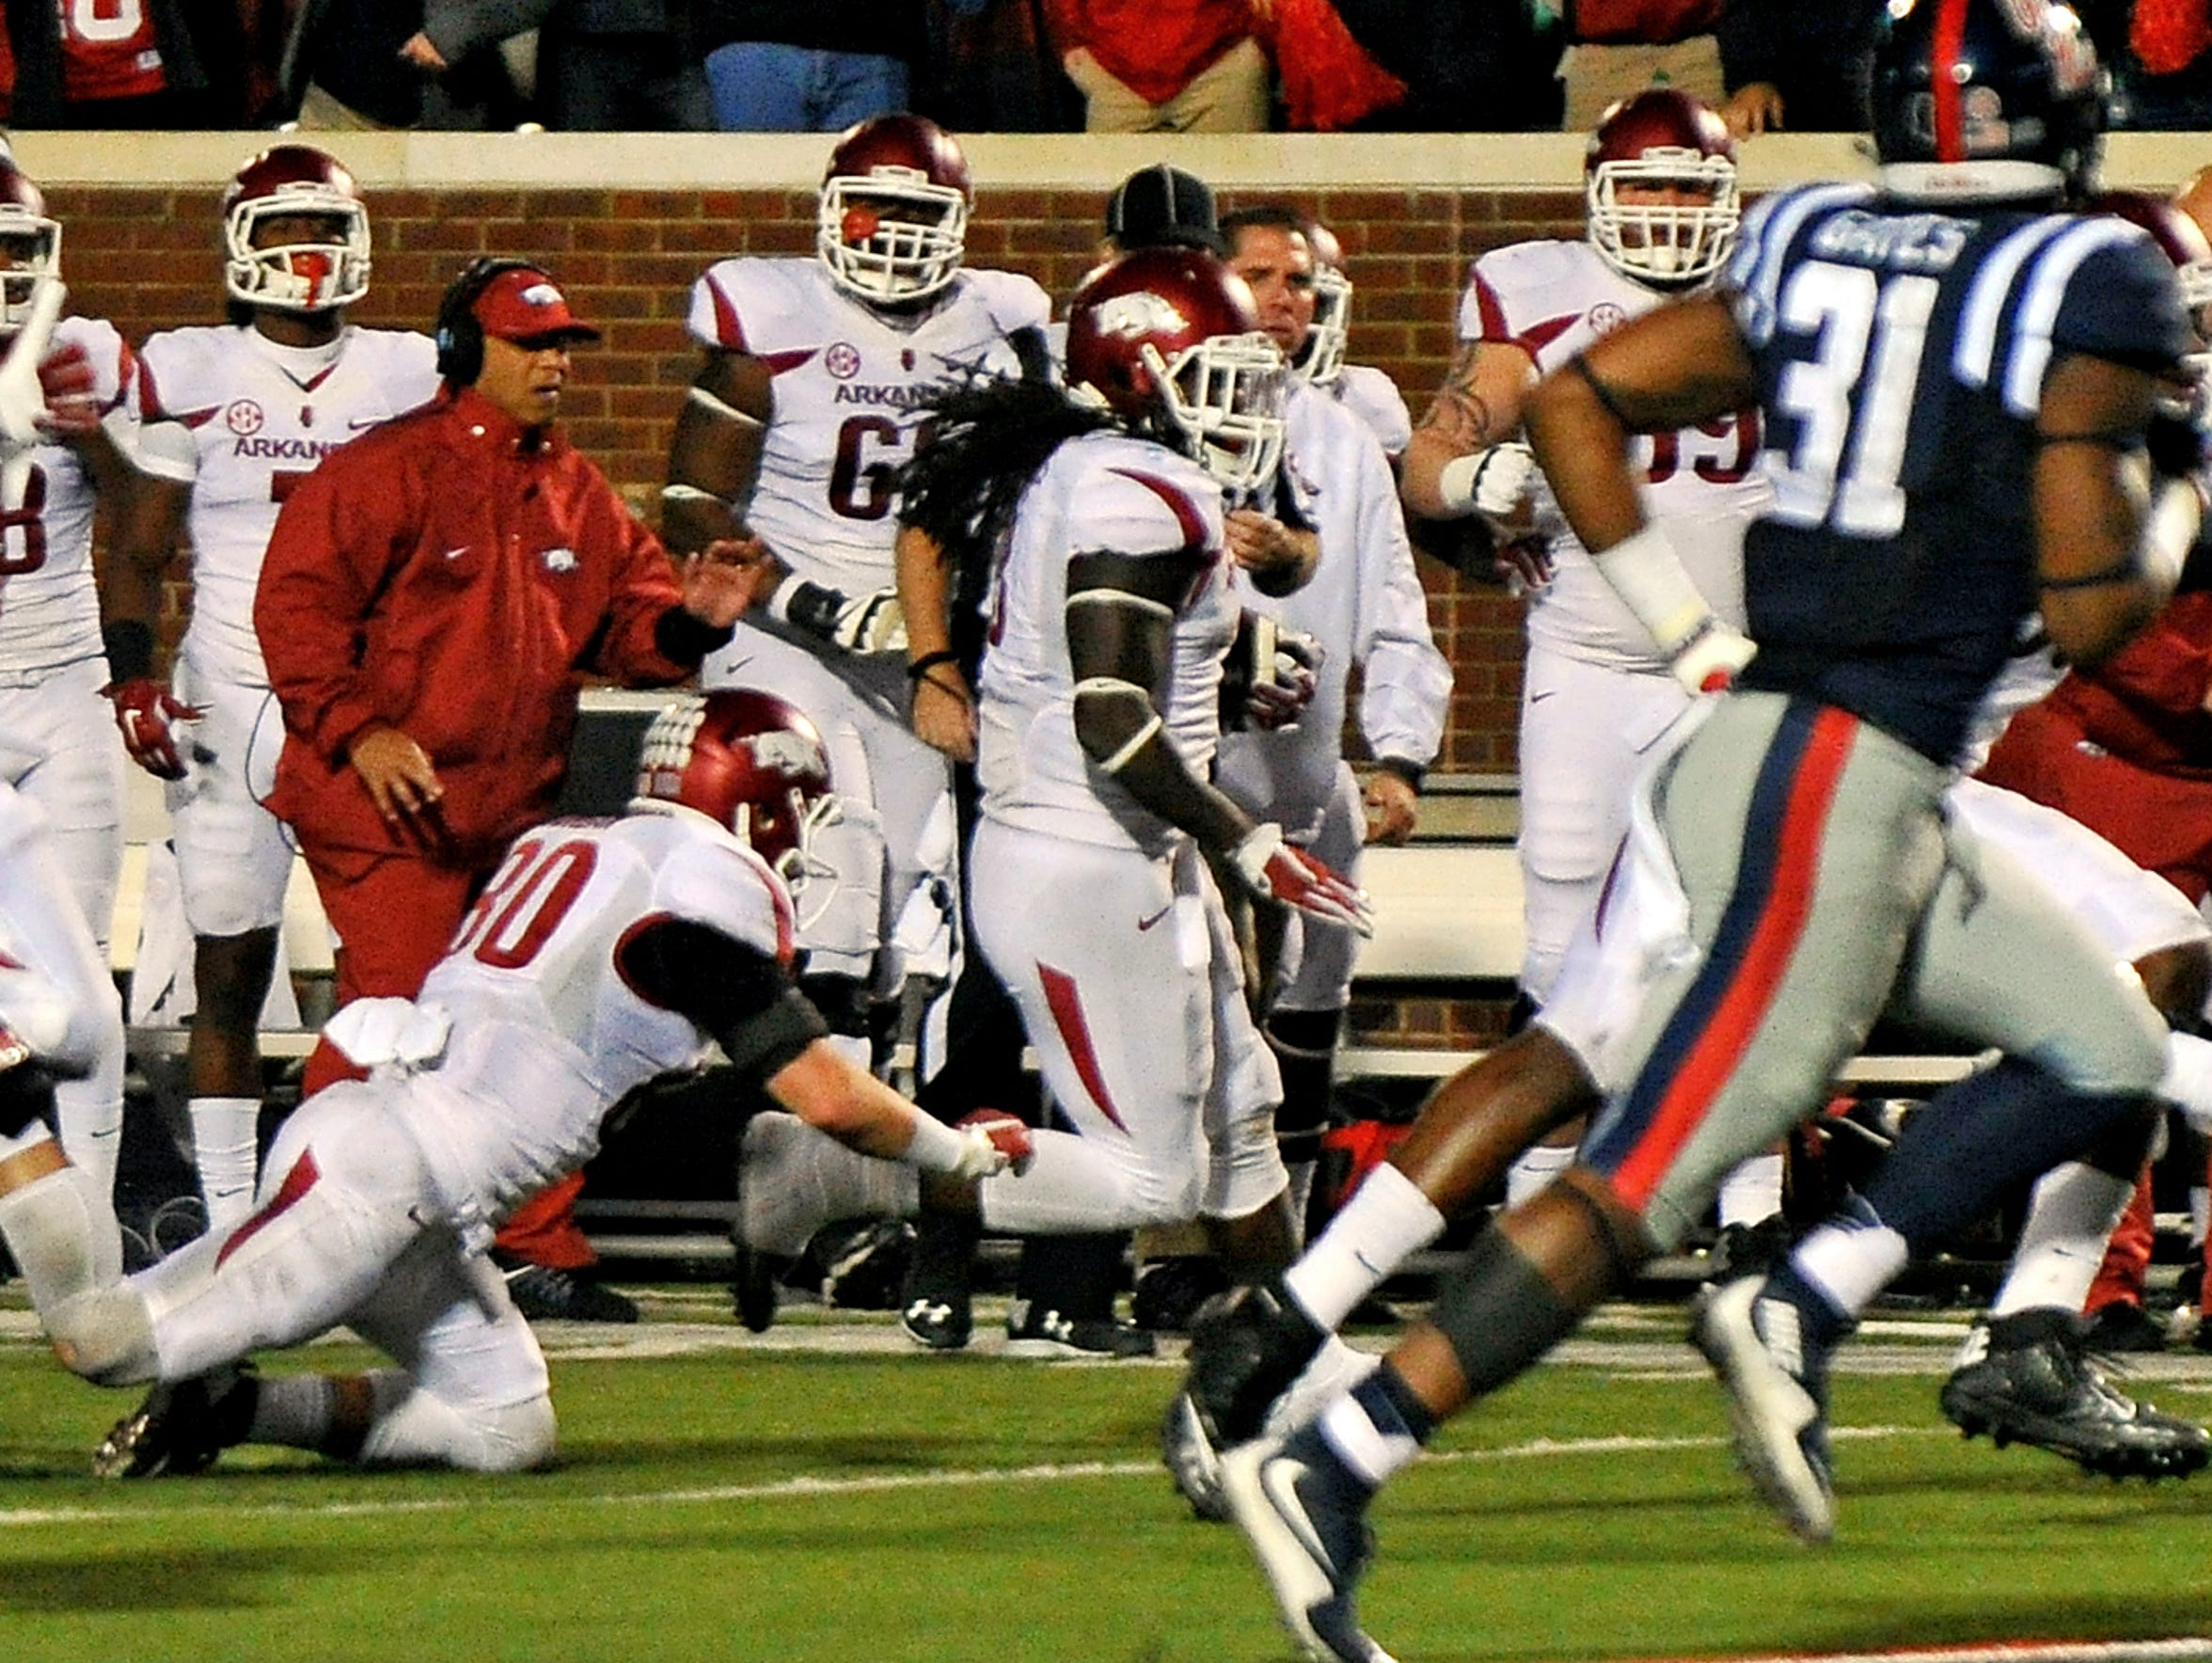 Arkansas running back Alex Collins picks up a lateral